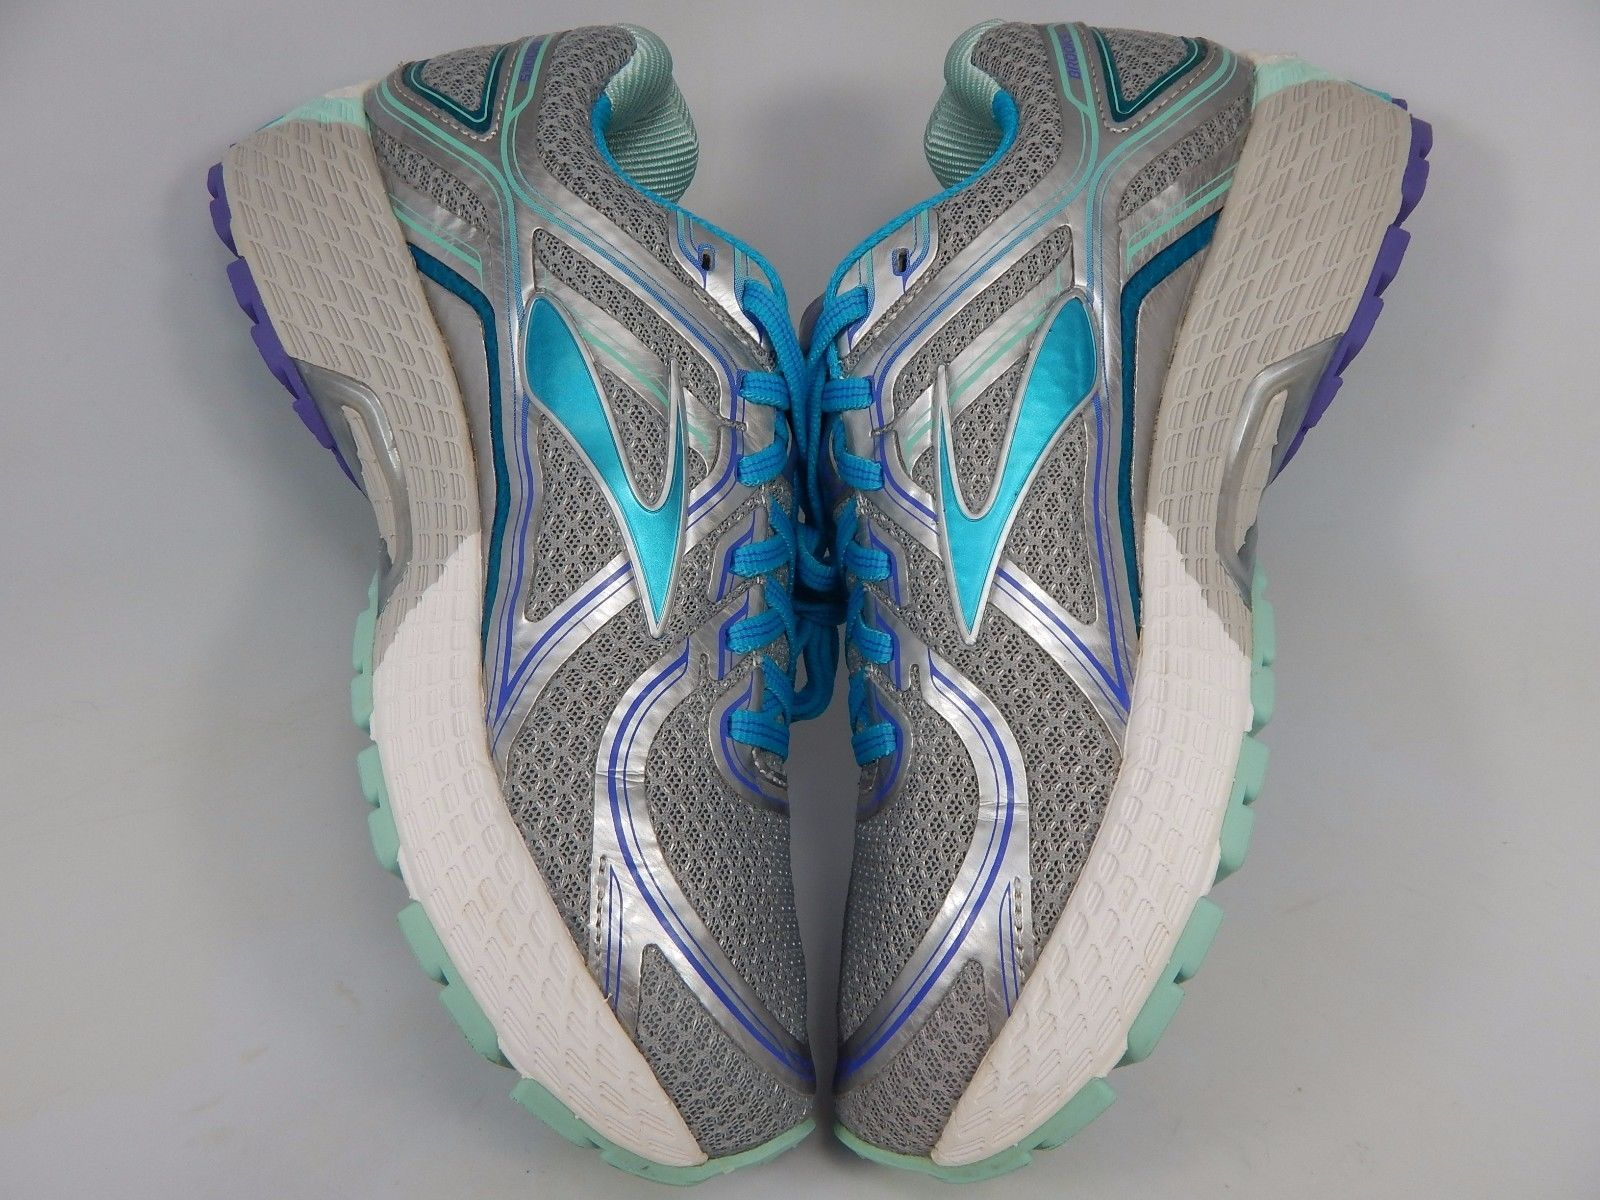 Brooks GTS 16 Women's Running Shoes Sz US 7.5 M (B) EU 38.5 Silver 1202031B170